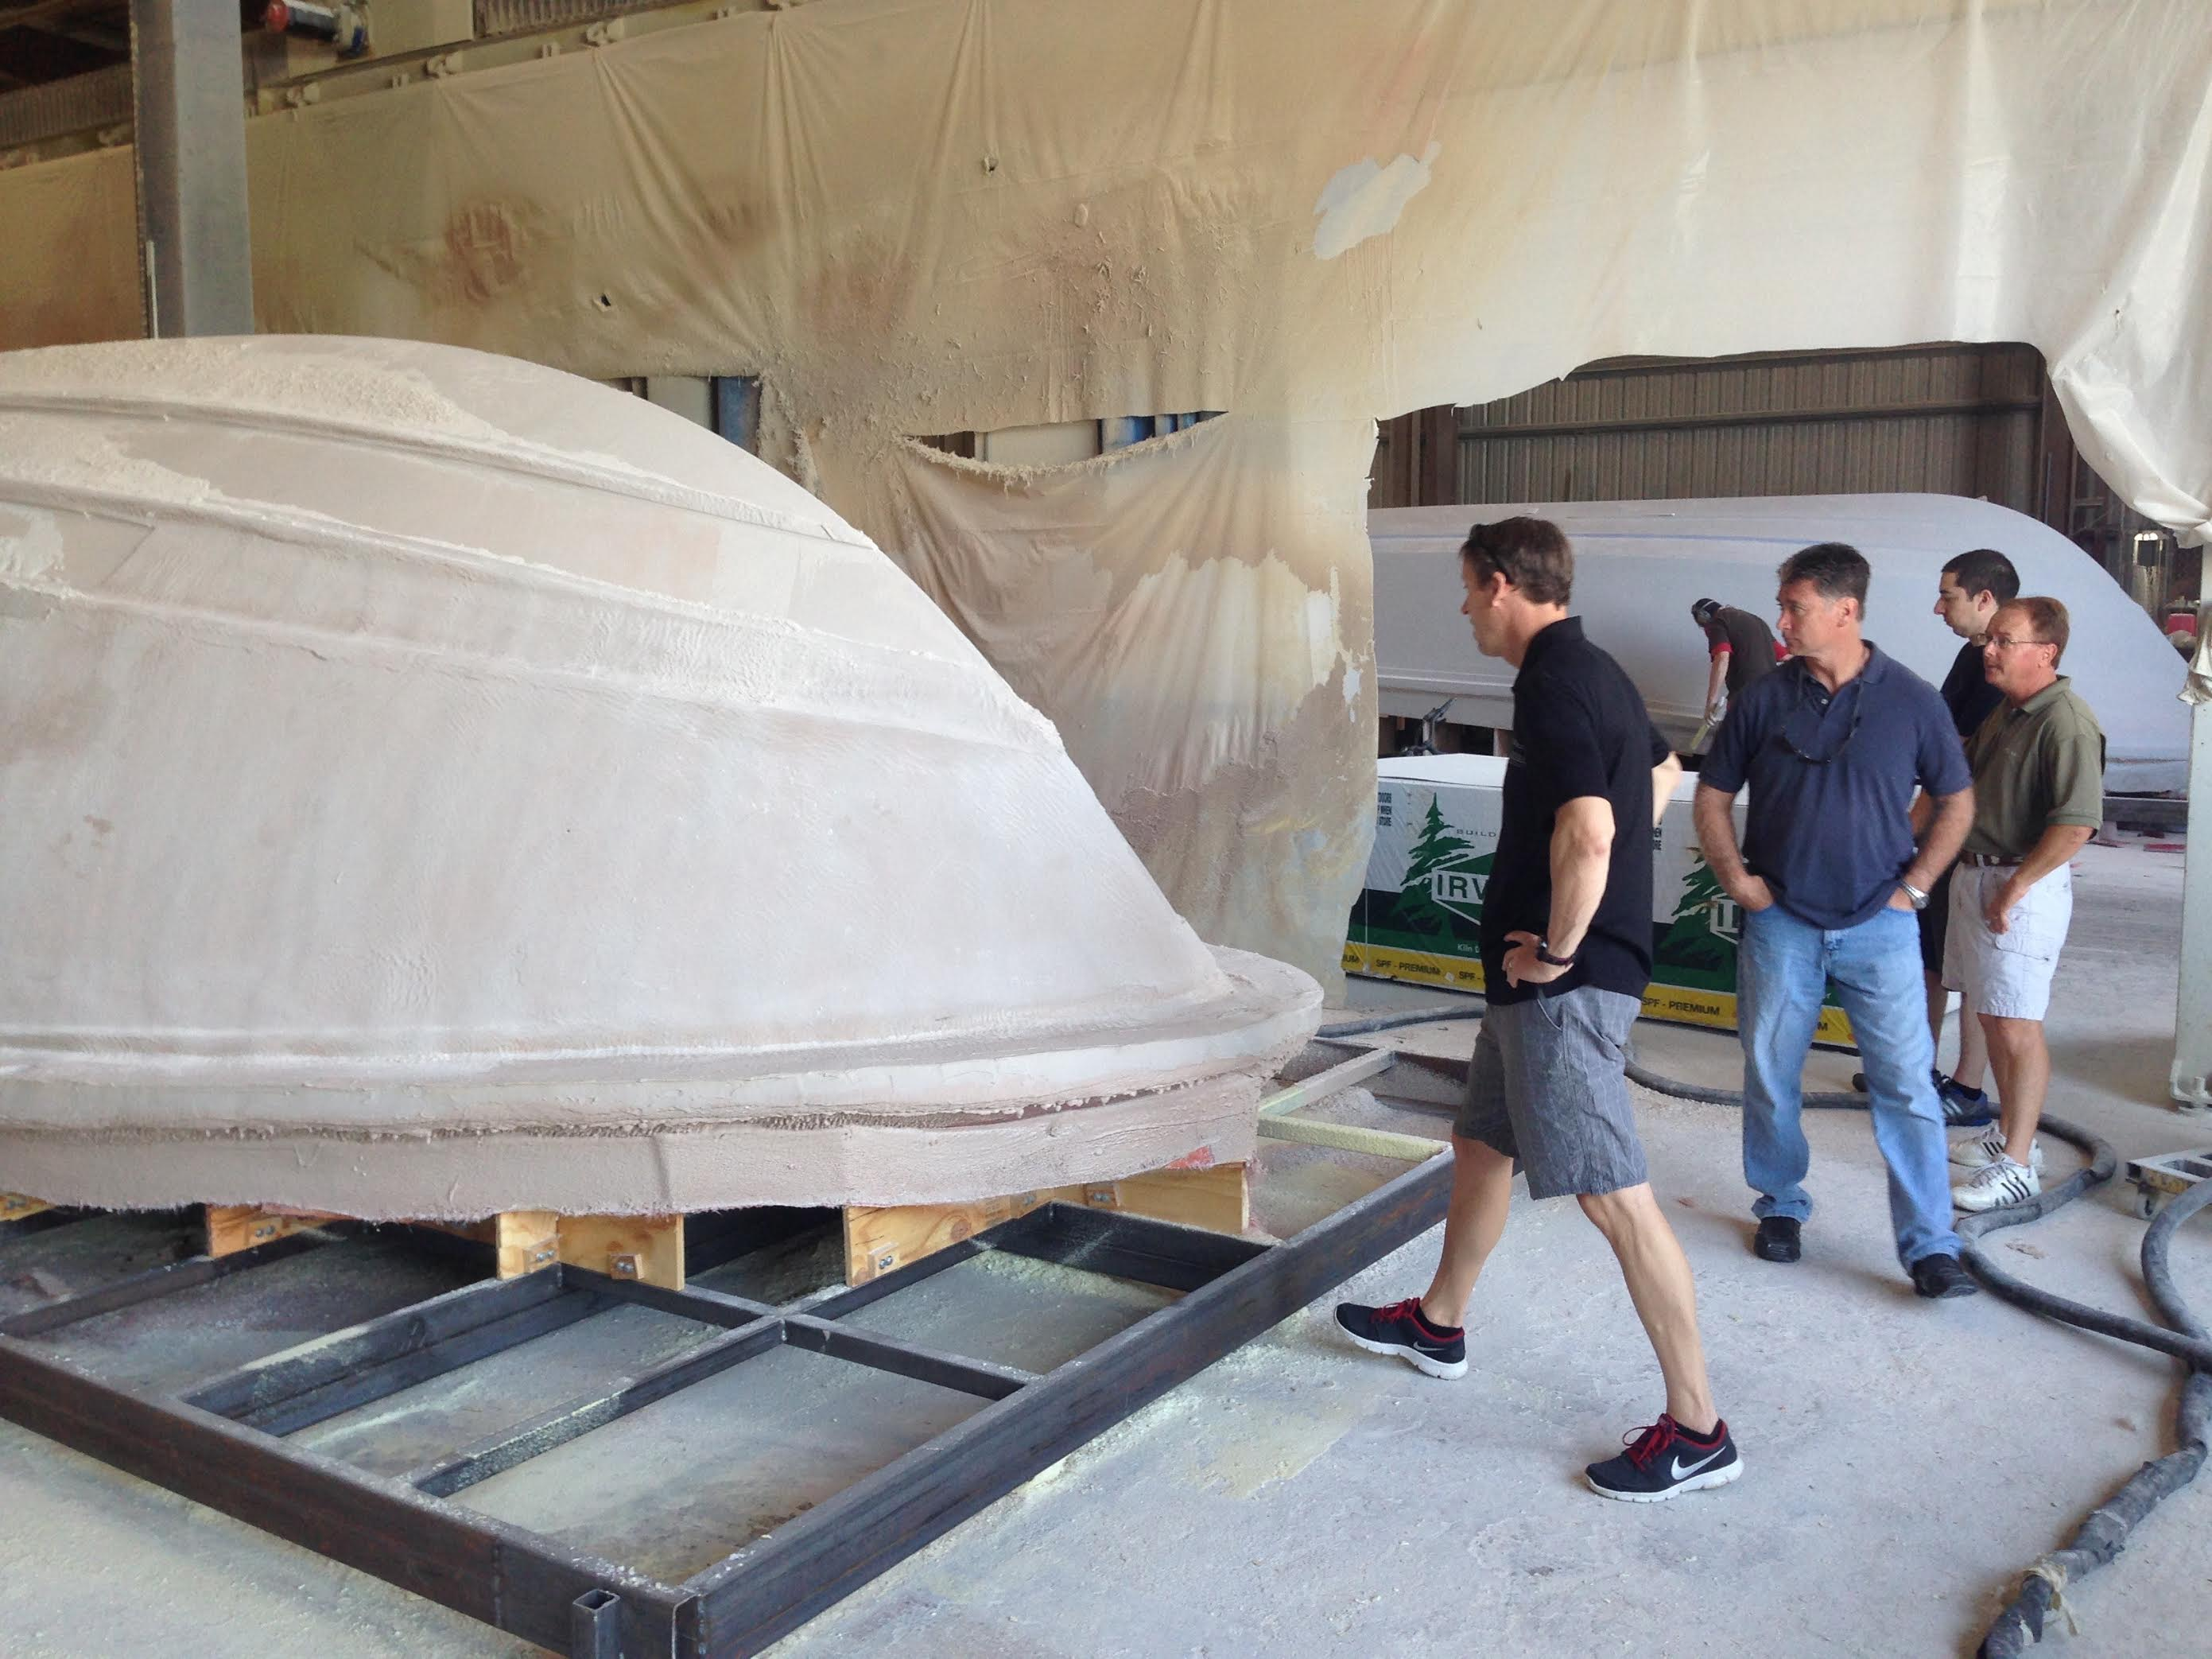 Early in the development of the M4200 at Mystic's headquarters in DeLand, Fla., Shogren's Greb Weber and Mystic's Johns Cosker watched the prototype take shape.